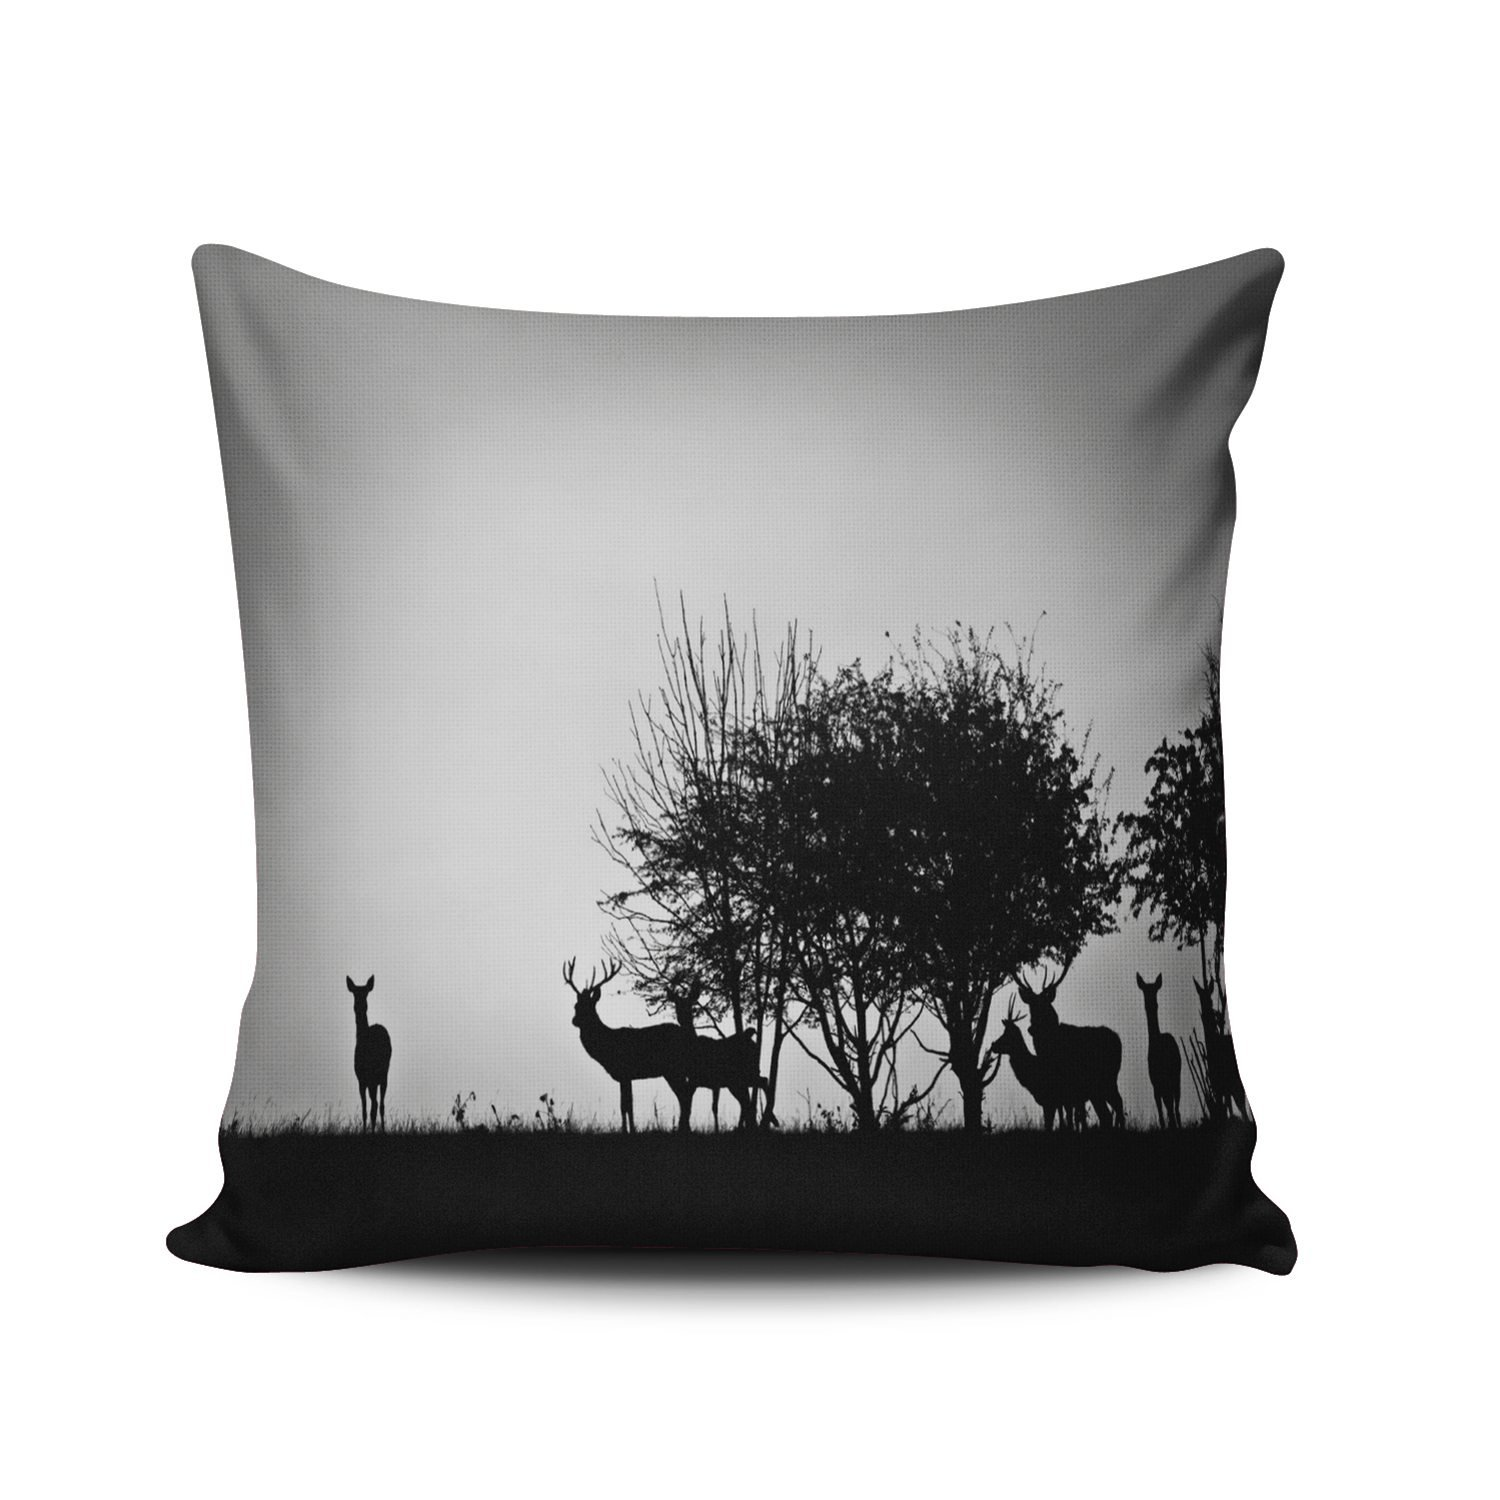 KEIBIKE Pillow Case Animal Deer Beside Tree in the Wild Personalized Pillowcases Fancy Decorative Black and White Throw Pillow Covers Cases Euro Square 26x26 Inches